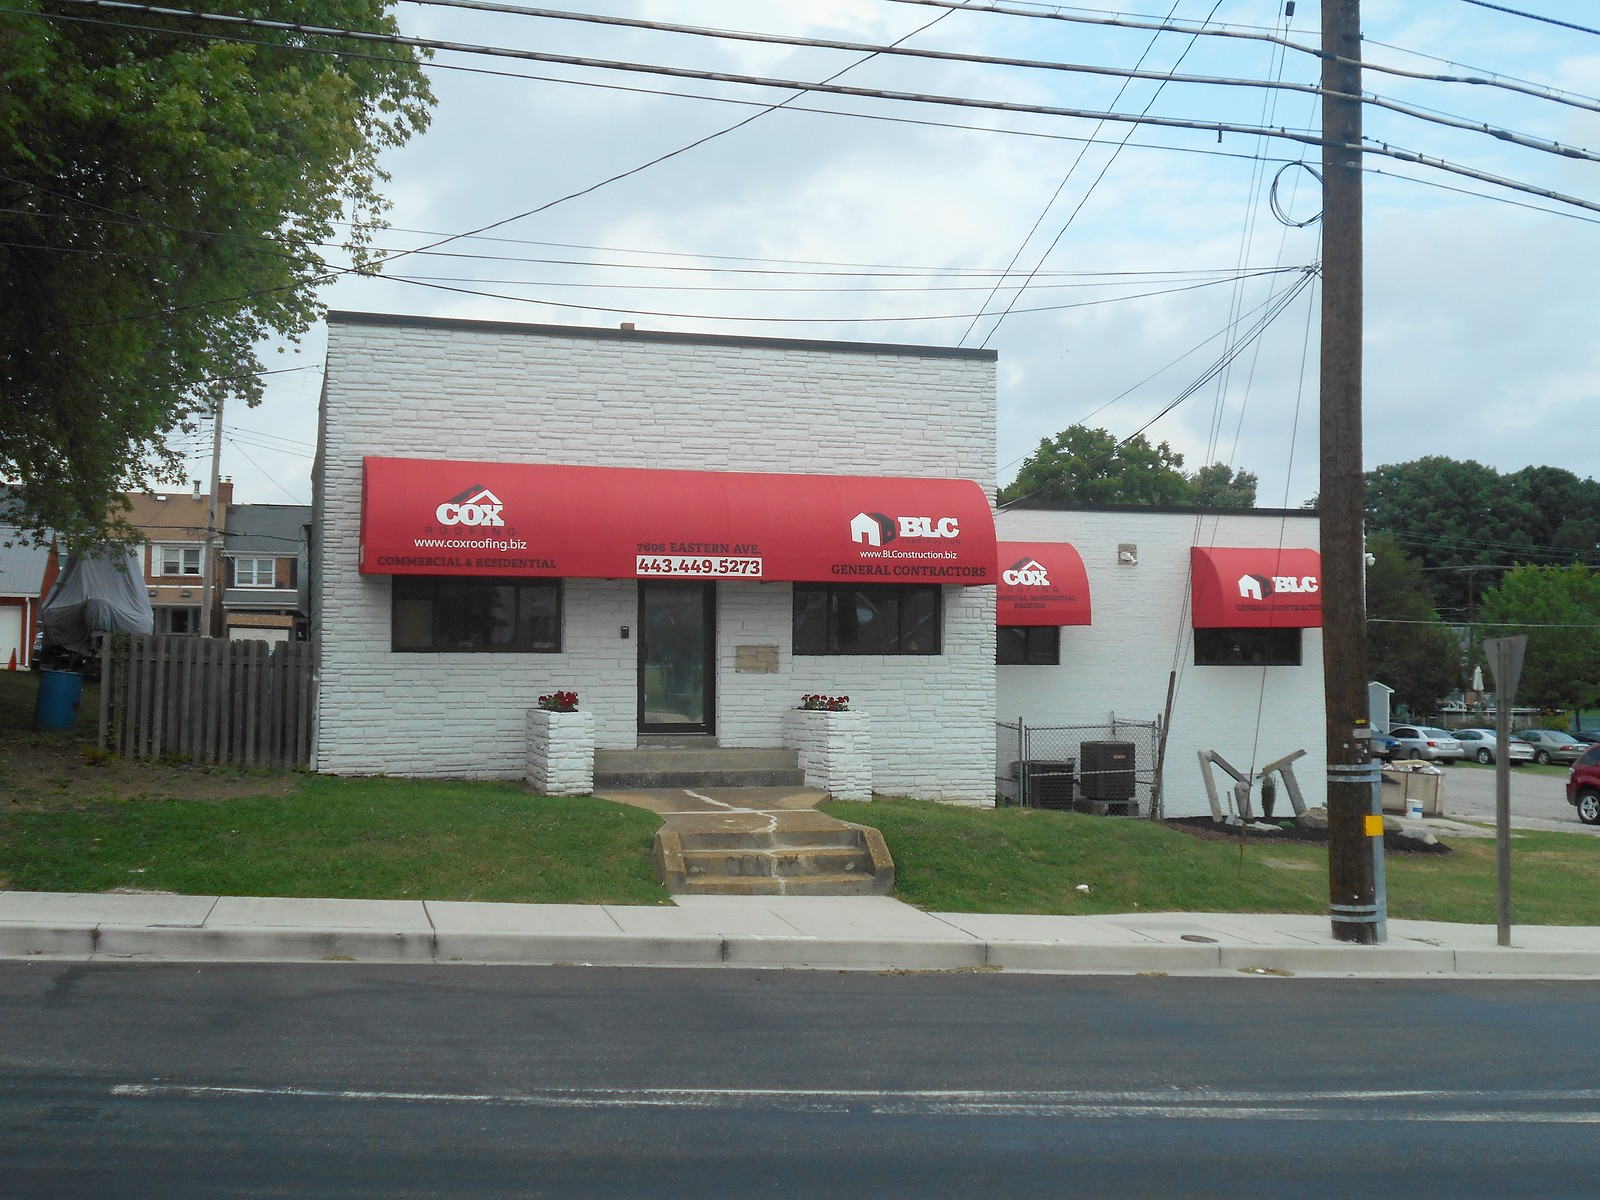 Building-Storefront and Window Awnings